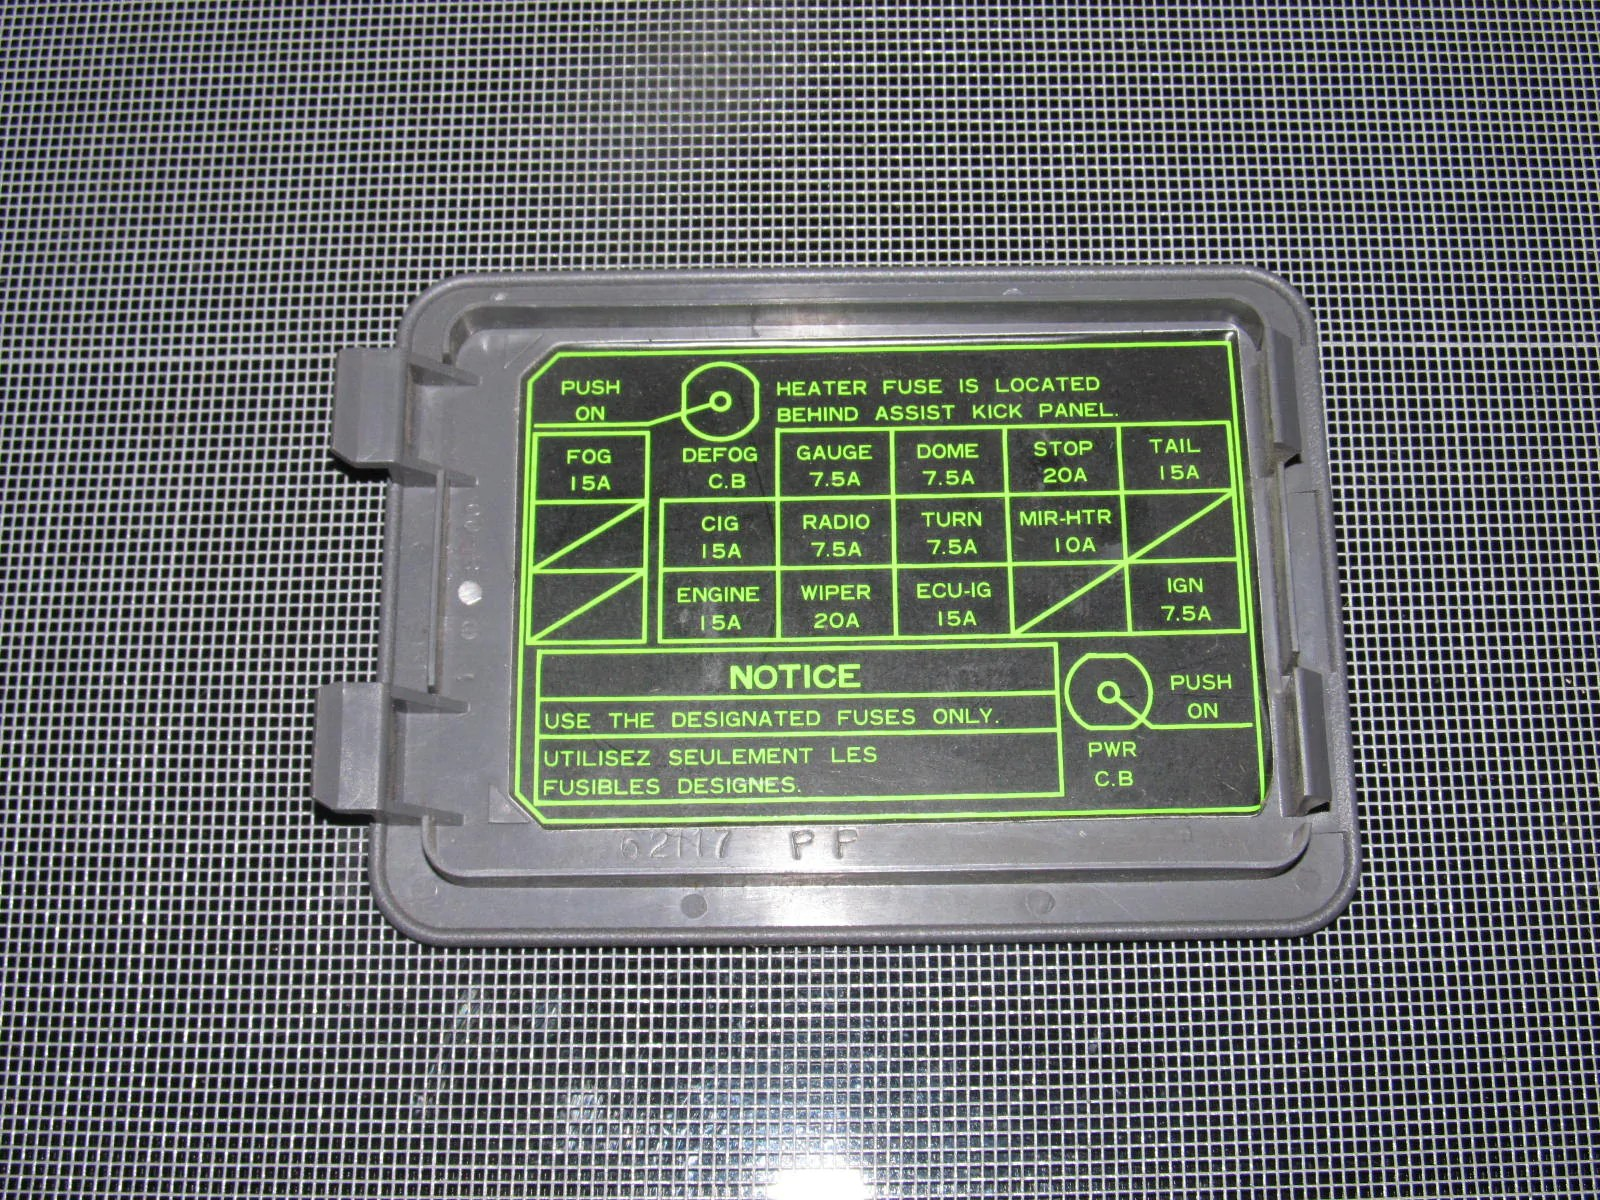 medium resolution of 86 acura integra fuse box layout wiring diagrams u2022 rh laurafinlay co uk 1994 acura integra